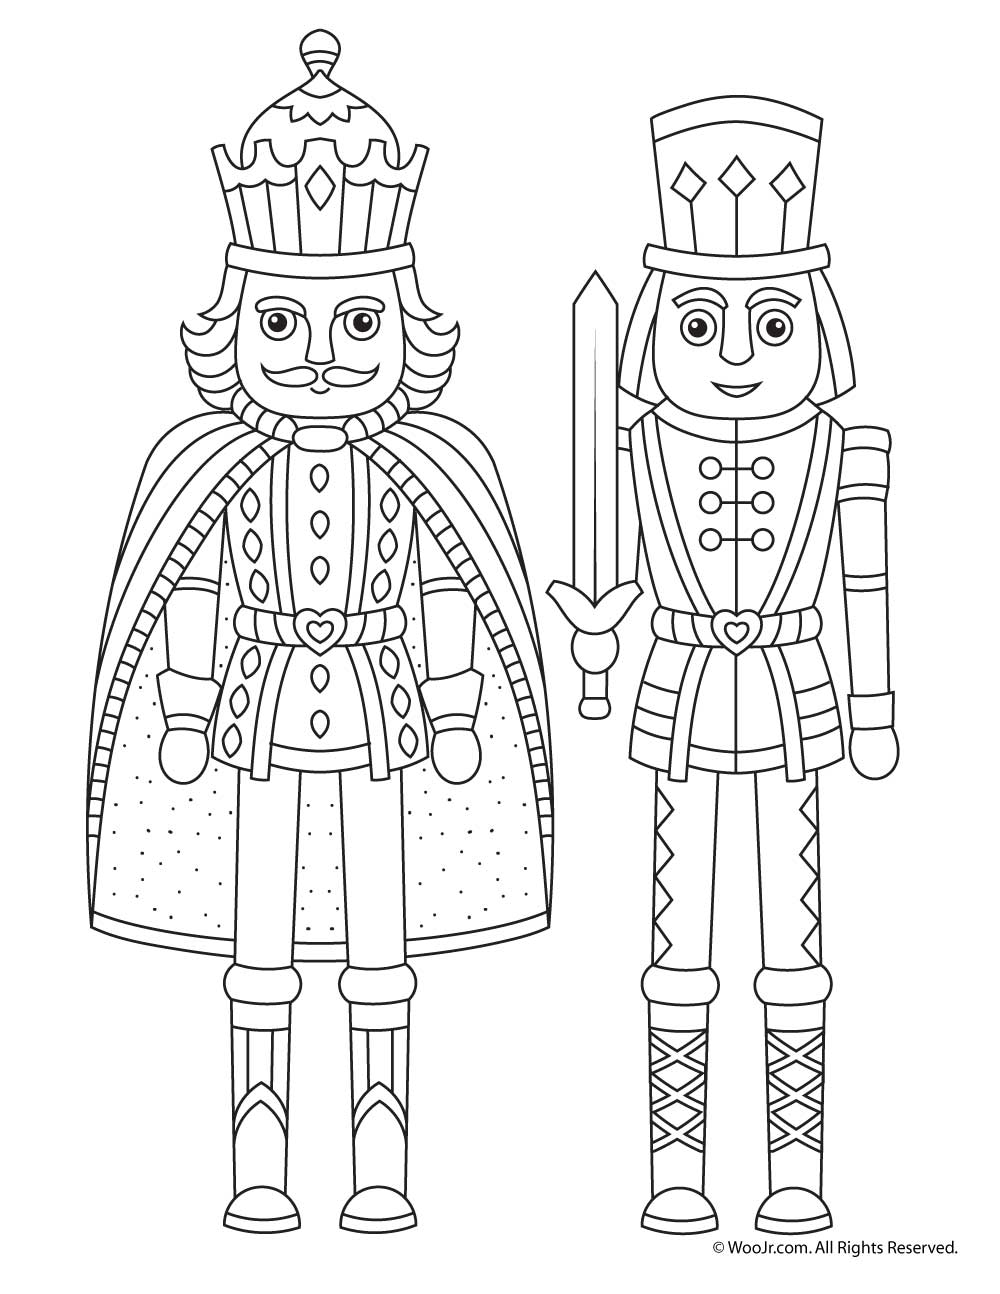 Christmas Nutcracker Coloring Pages With Page Woo Jr Kids Activities